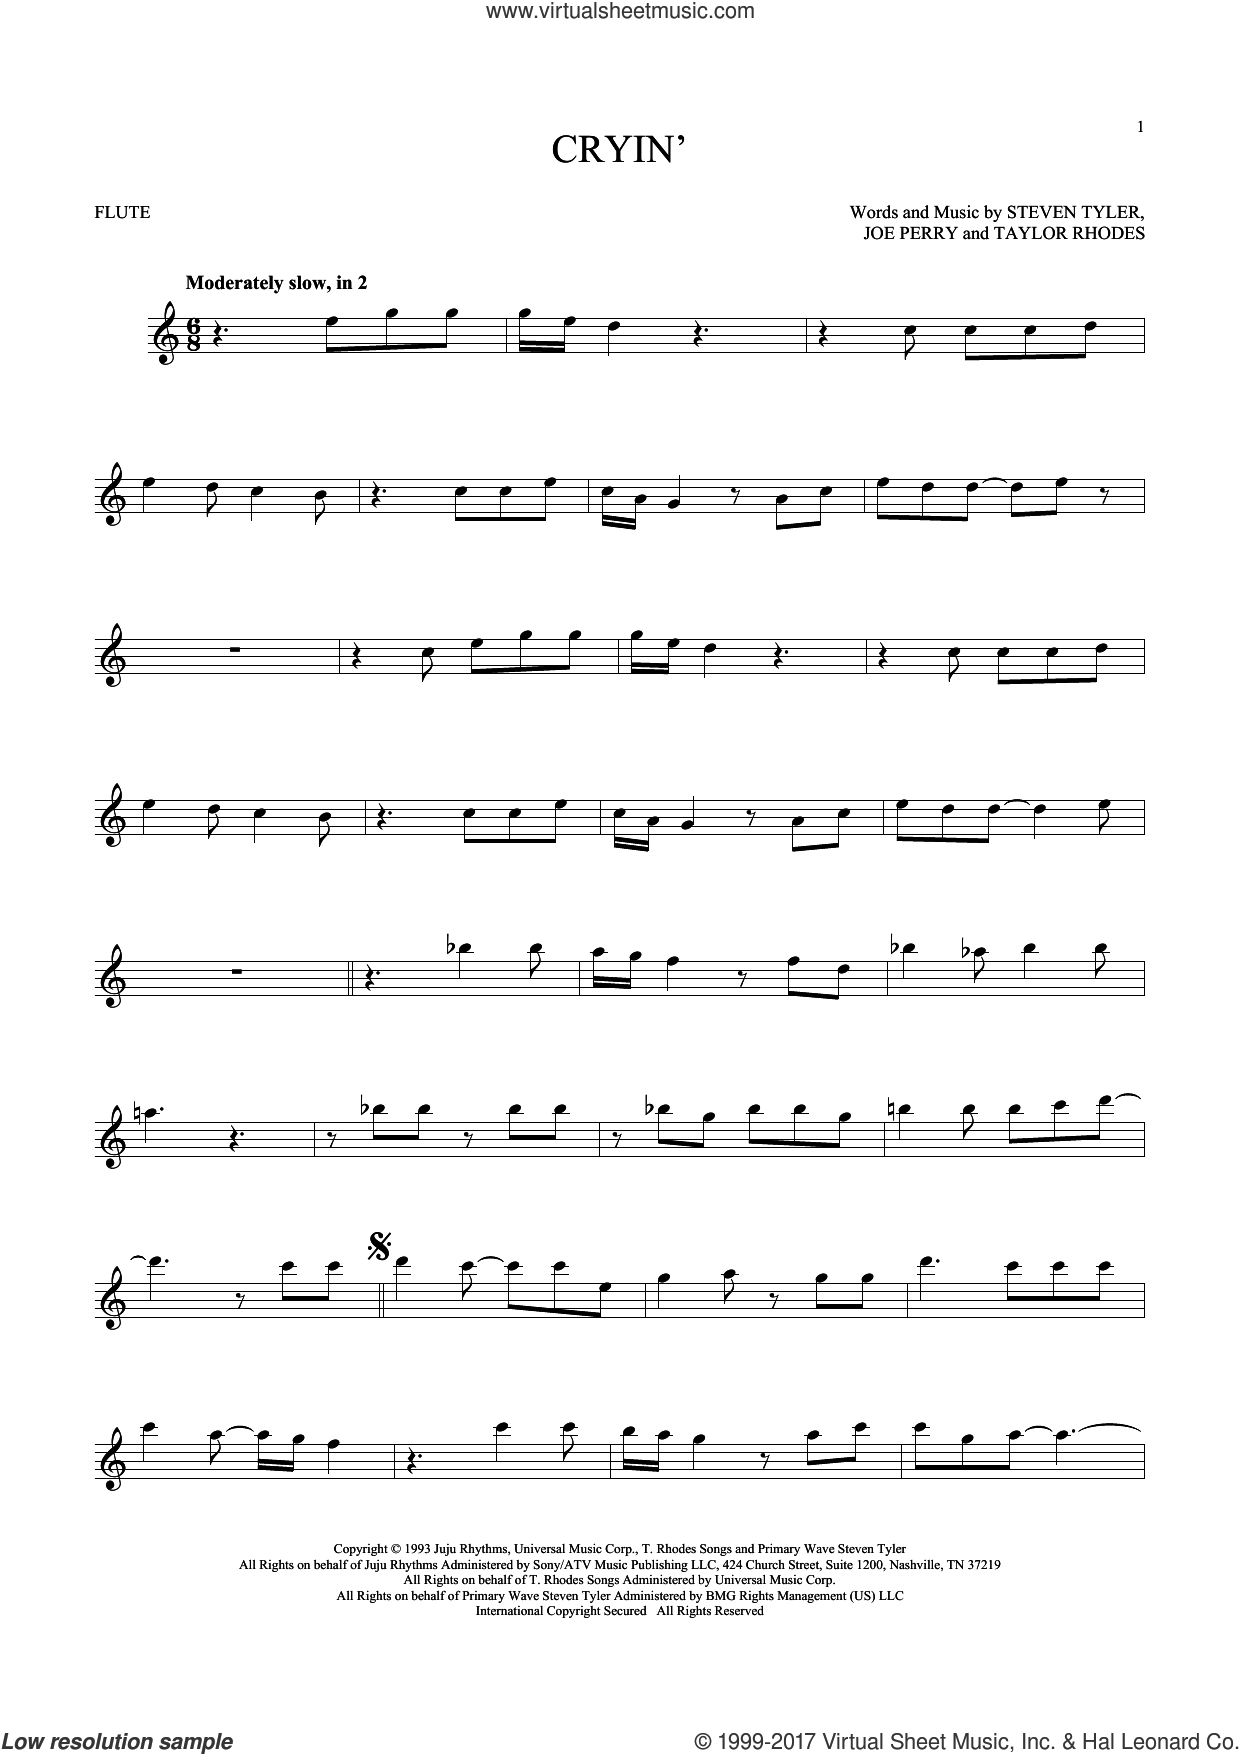 Cryin' sheet music for flute solo by Aerosmith, Joe Perry, Steven Tyler and Taylor Rhodes, intermediate skill level